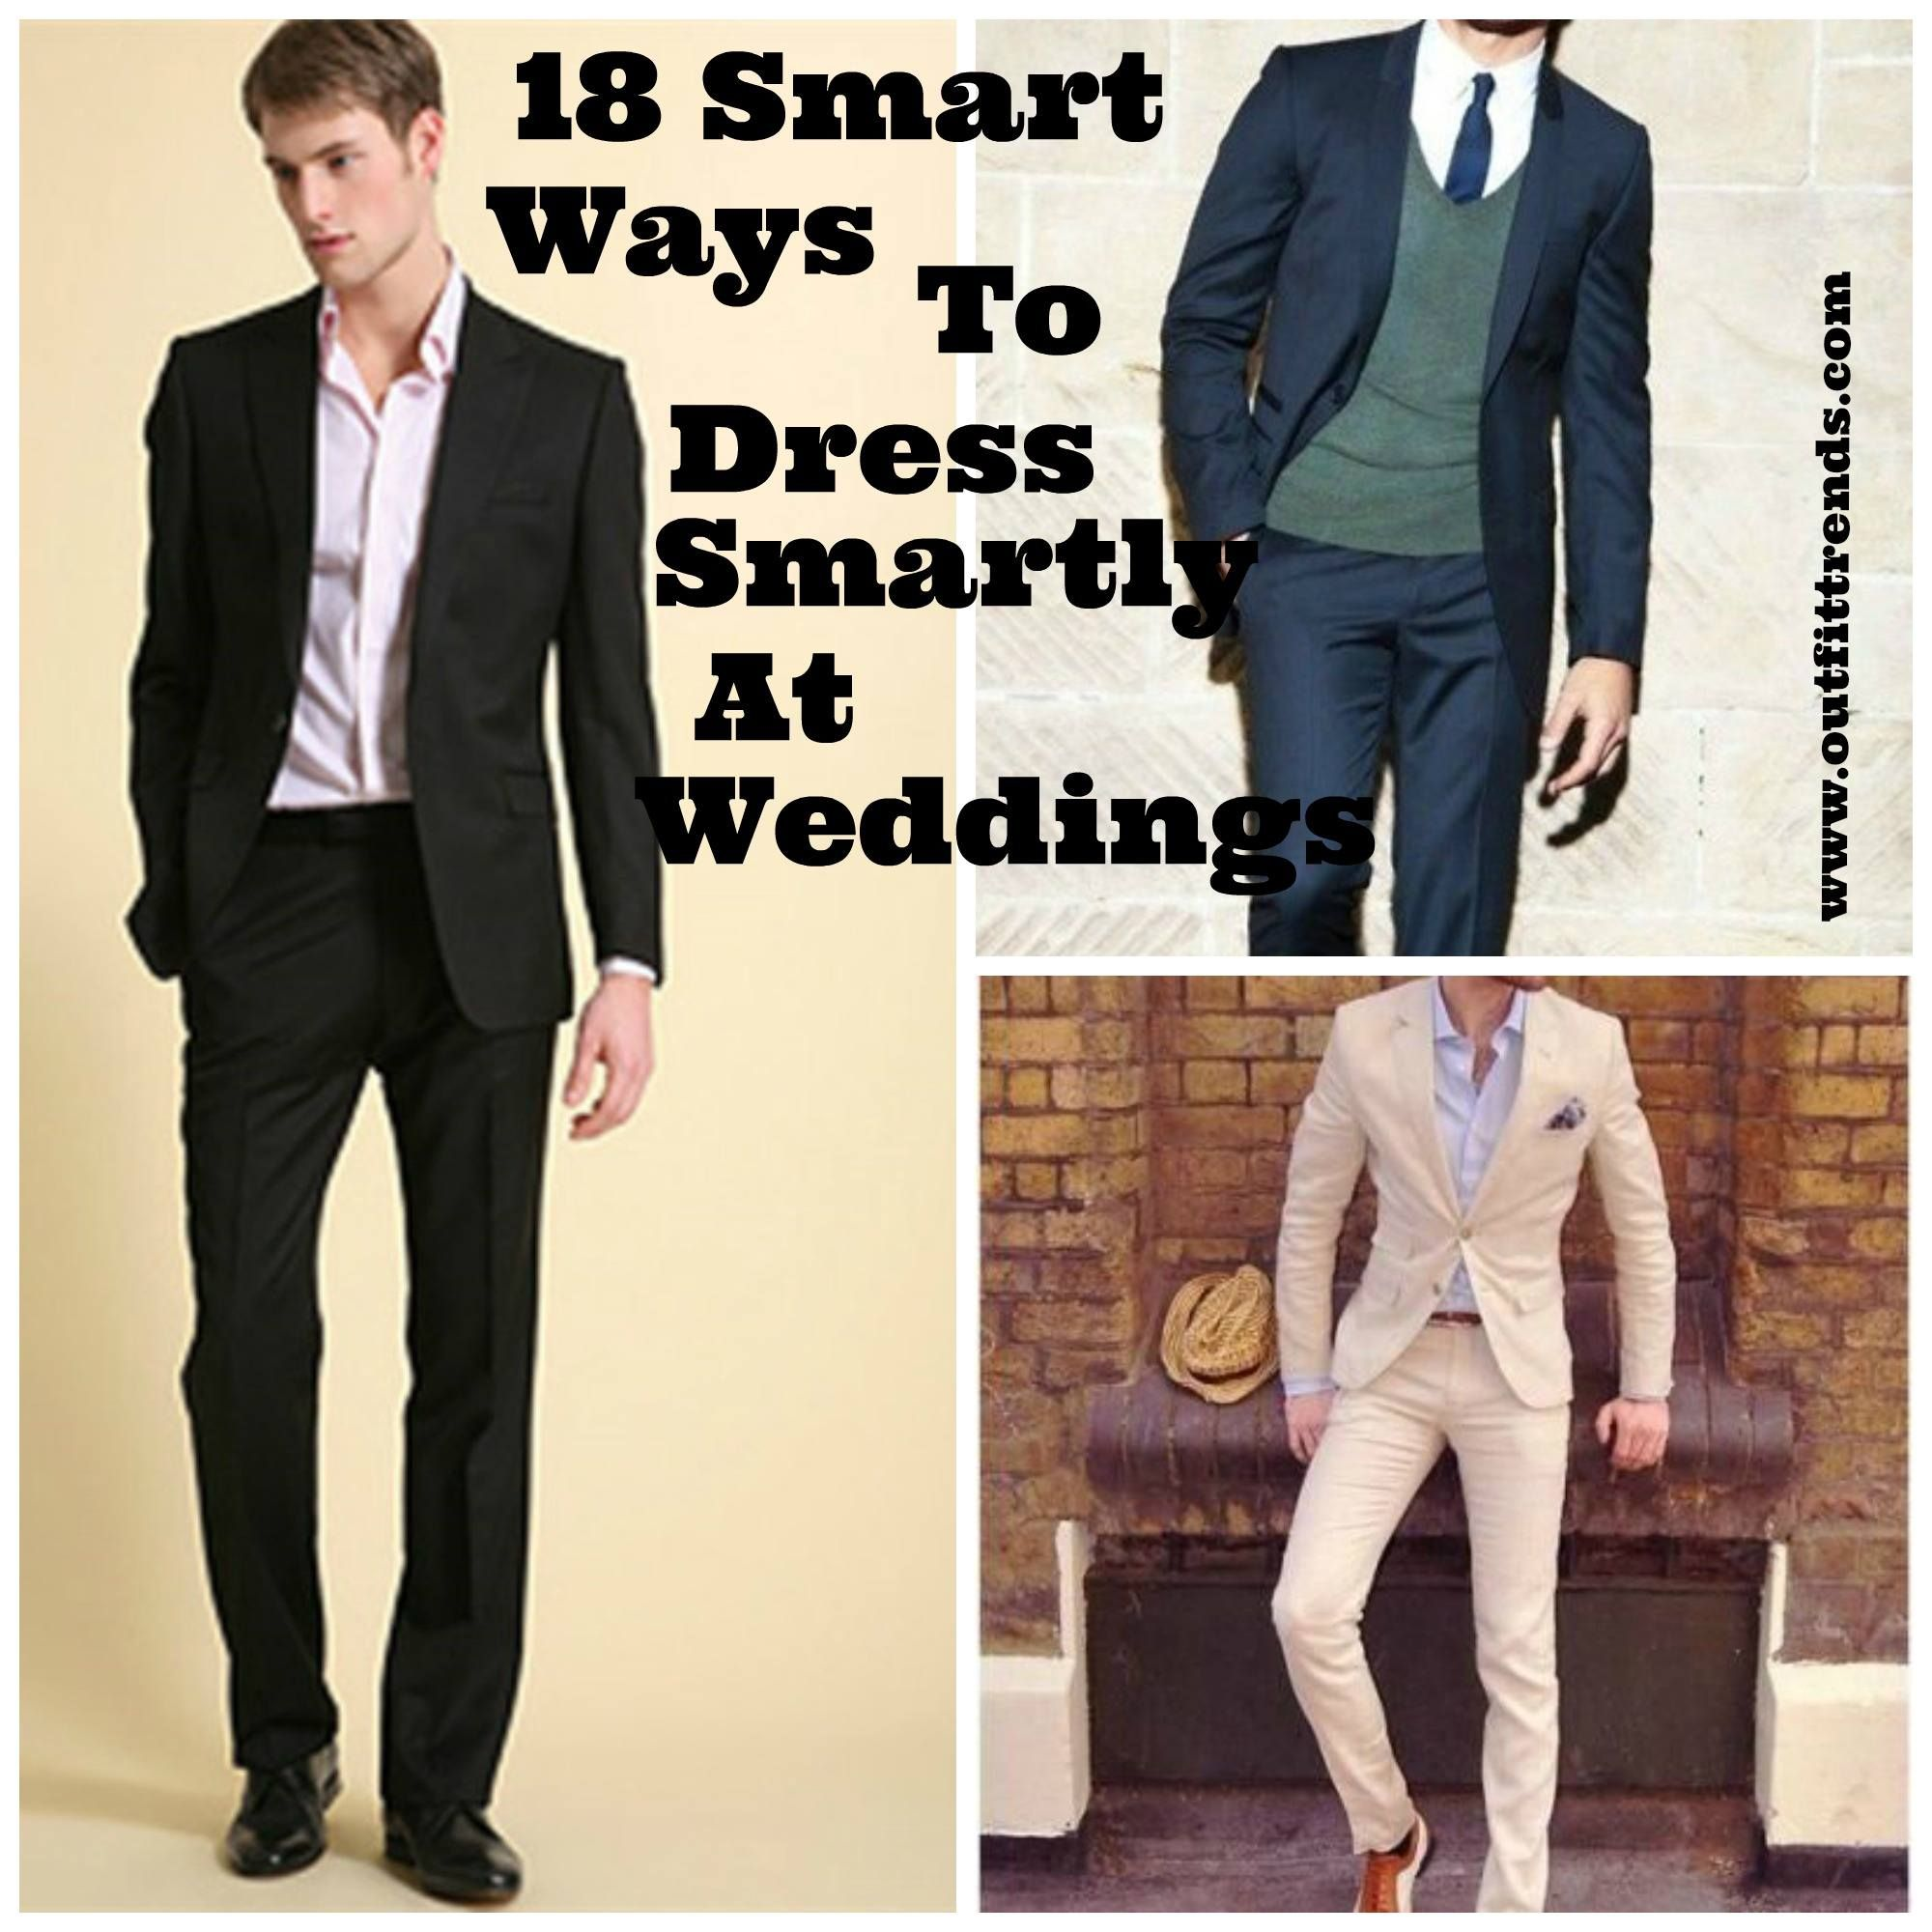 Casual Wedding Outfits For Men Invitation Bring A Lot Of Confusion As In What To Wear And How Pull Together Cool Outfit